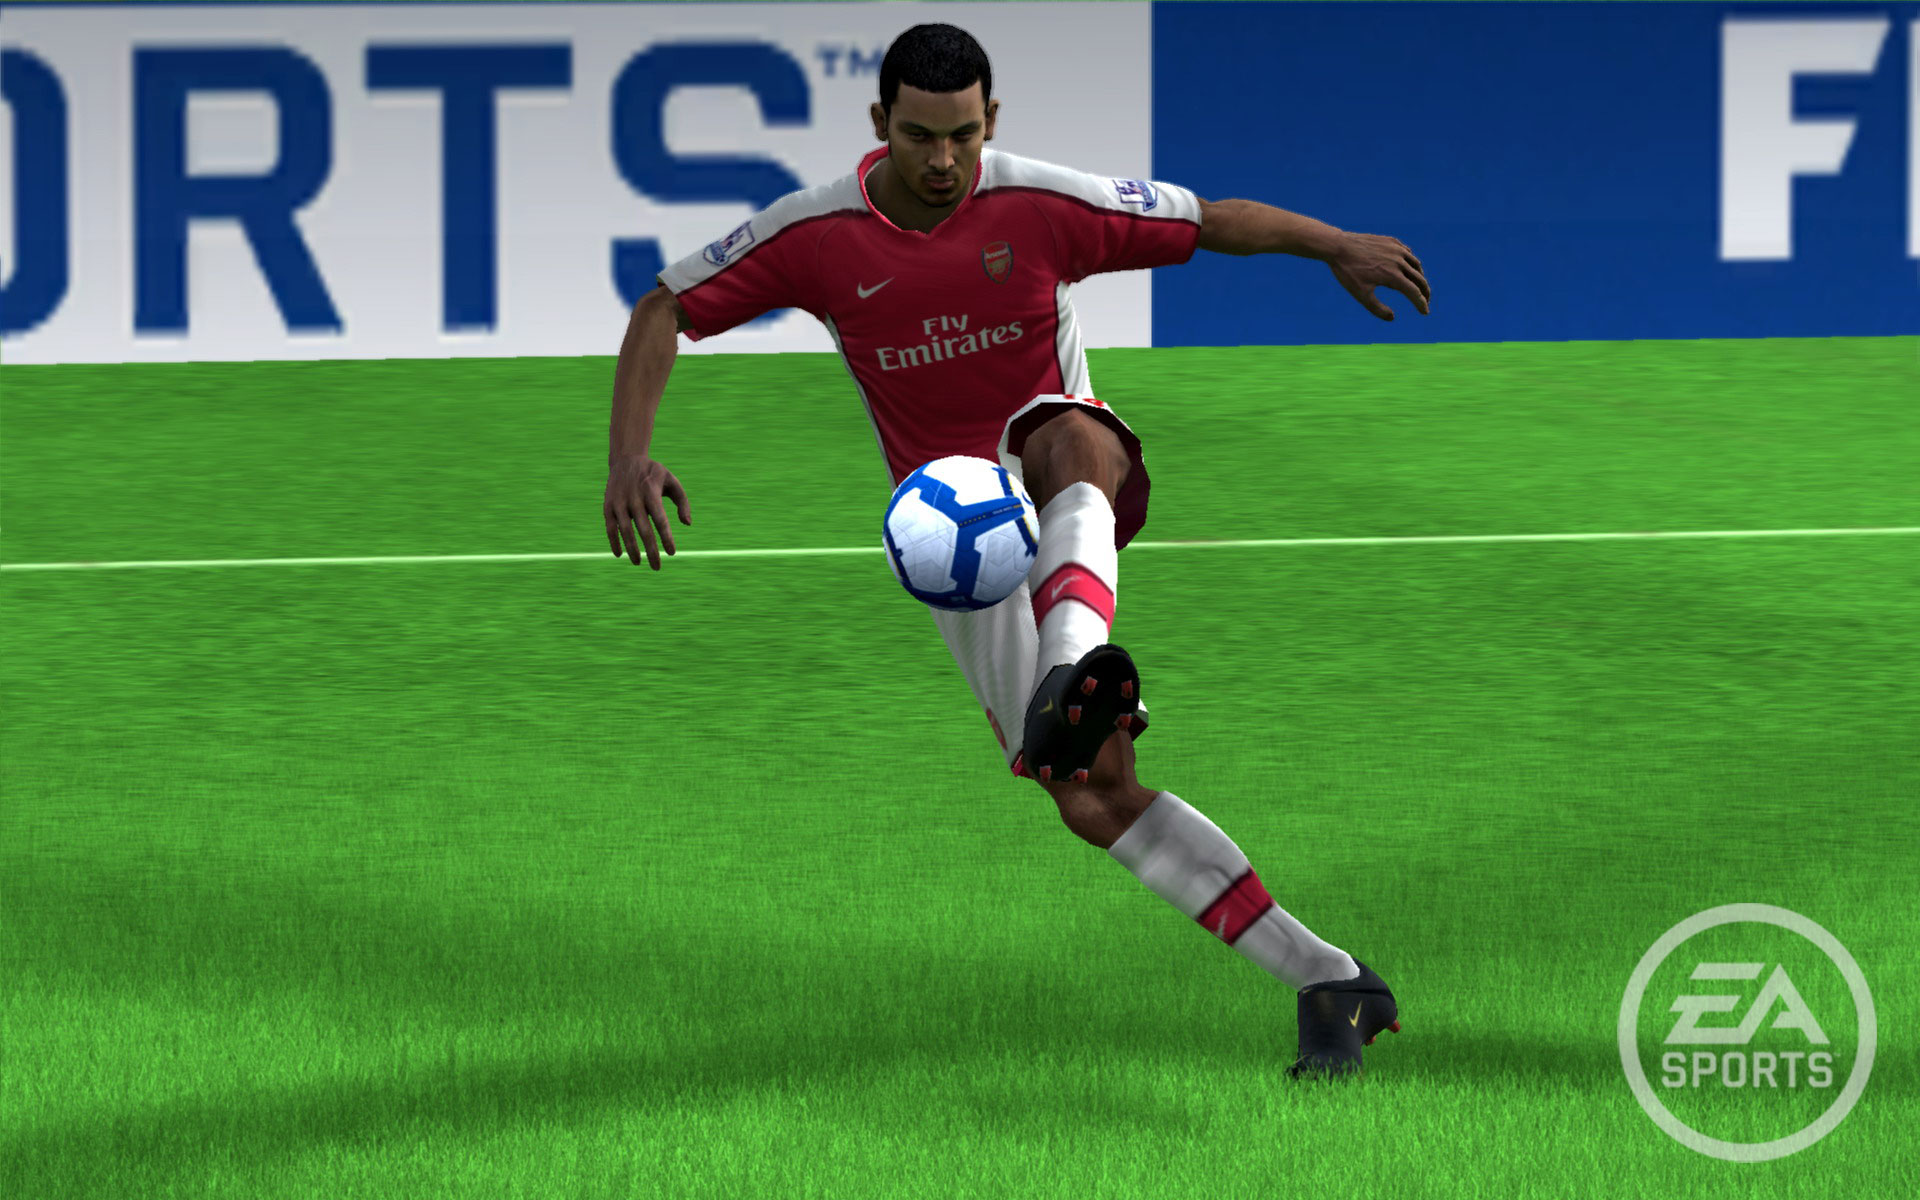 download fifa 12 Software - Free Download